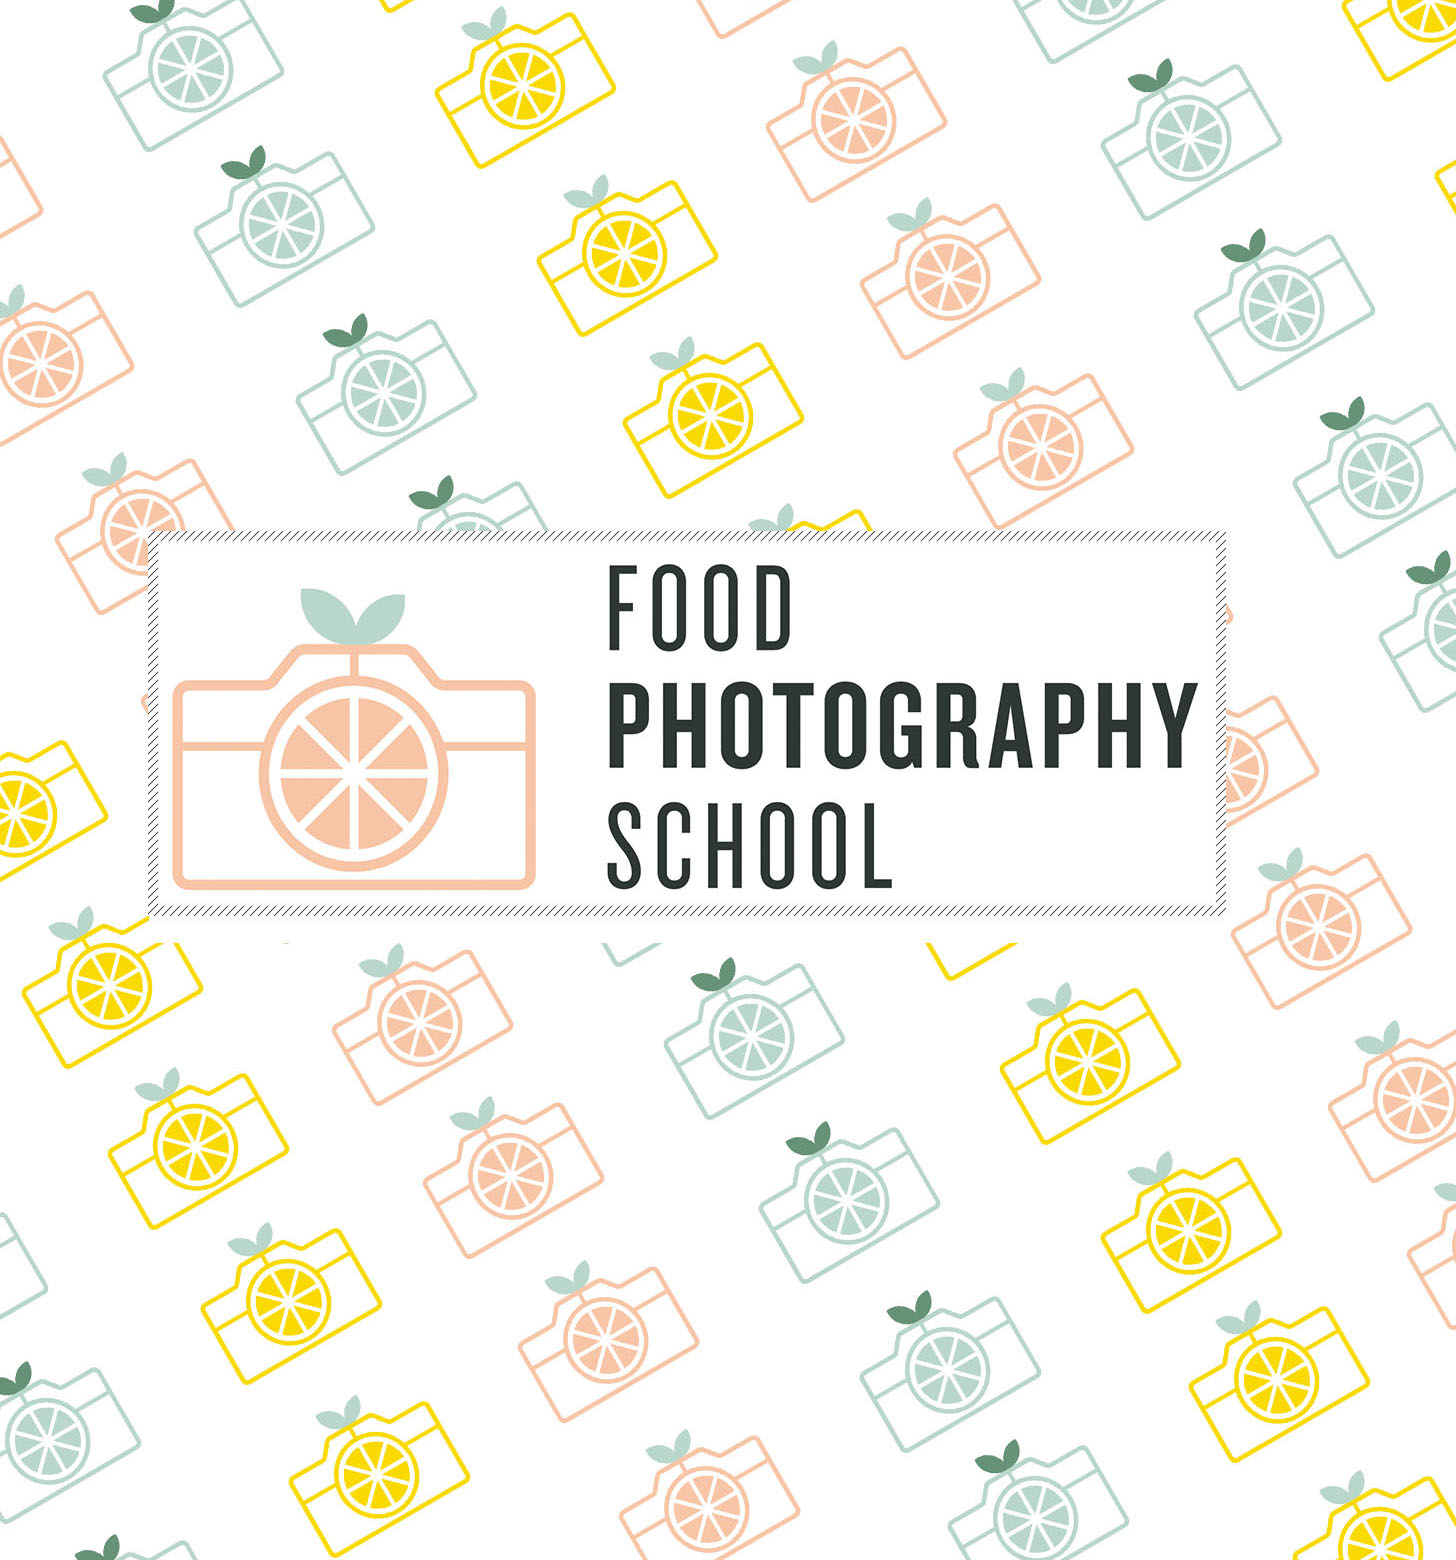 Food photography school logo on a background of citrus-y cameras